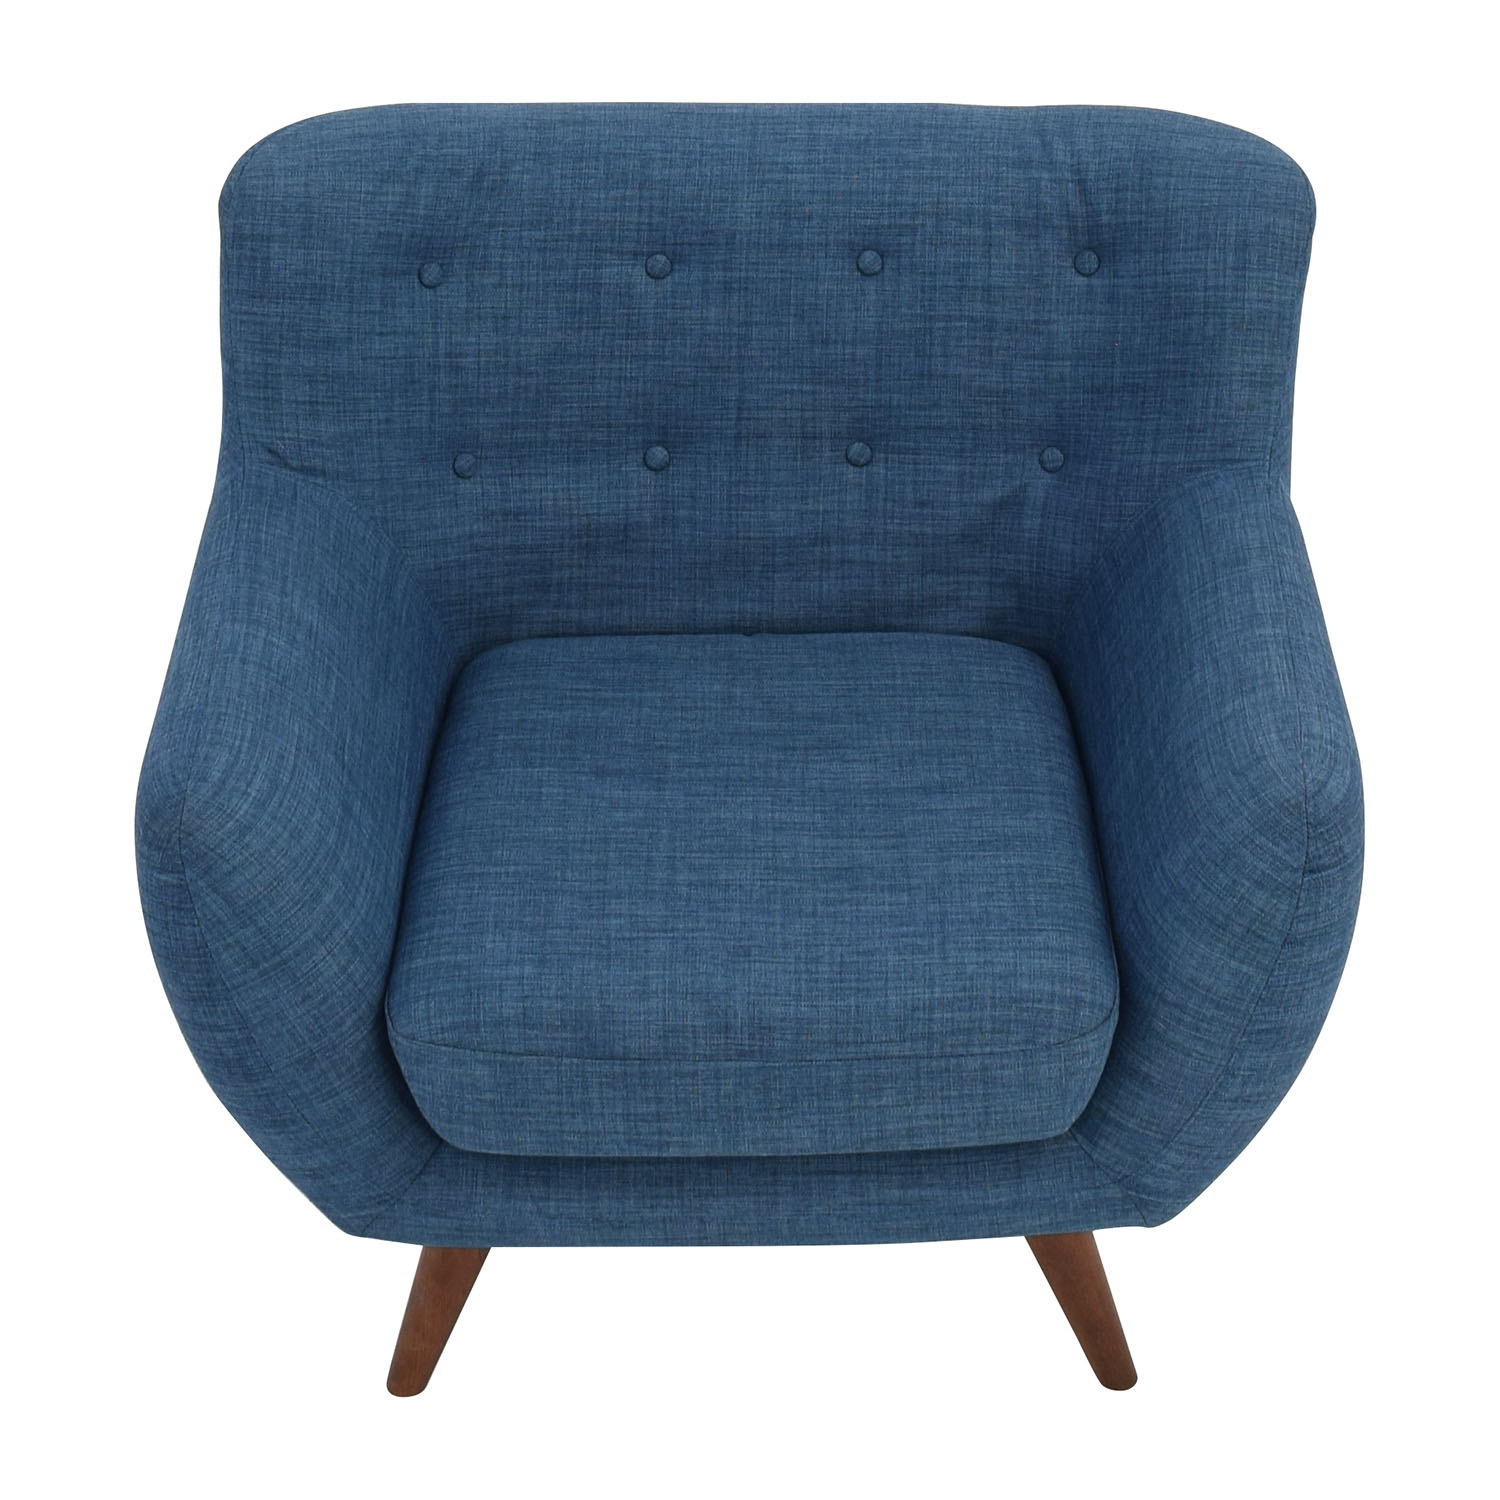 Olson Olson Mid-Century Blue Tufted Arm Chair on sale